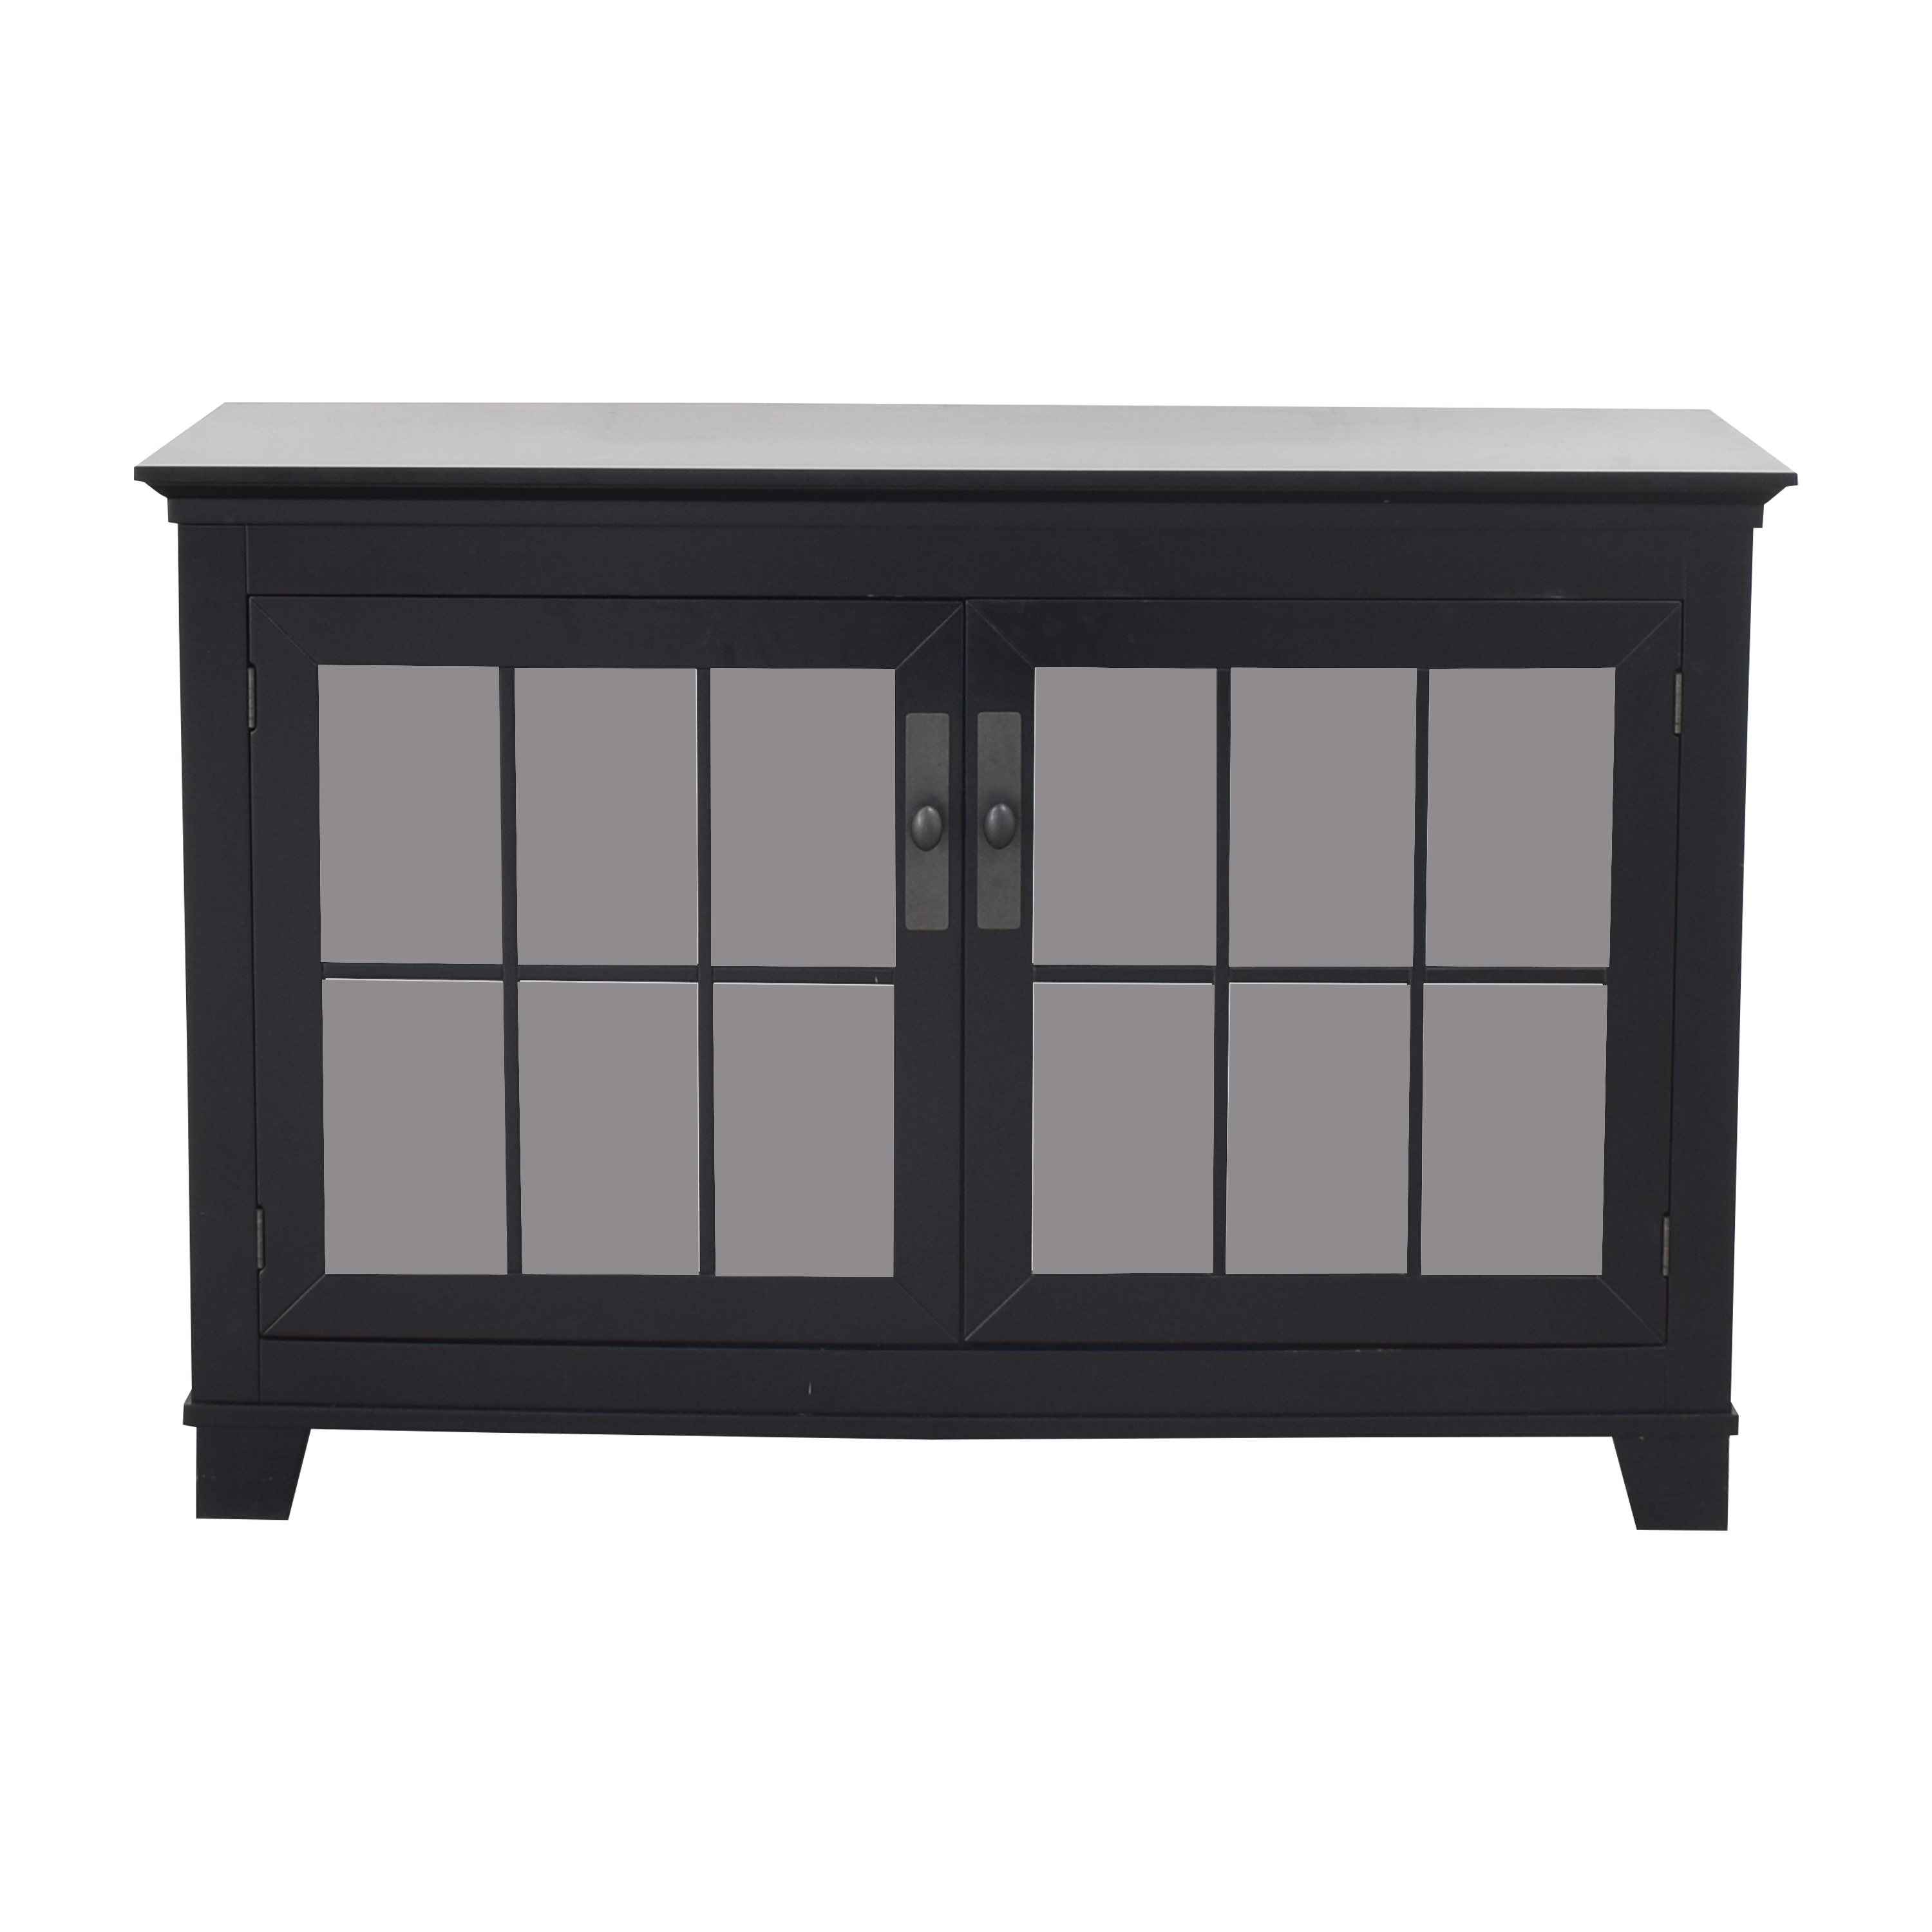 Crate & Barrel Crate & Barrel Windham Media Console  for sale